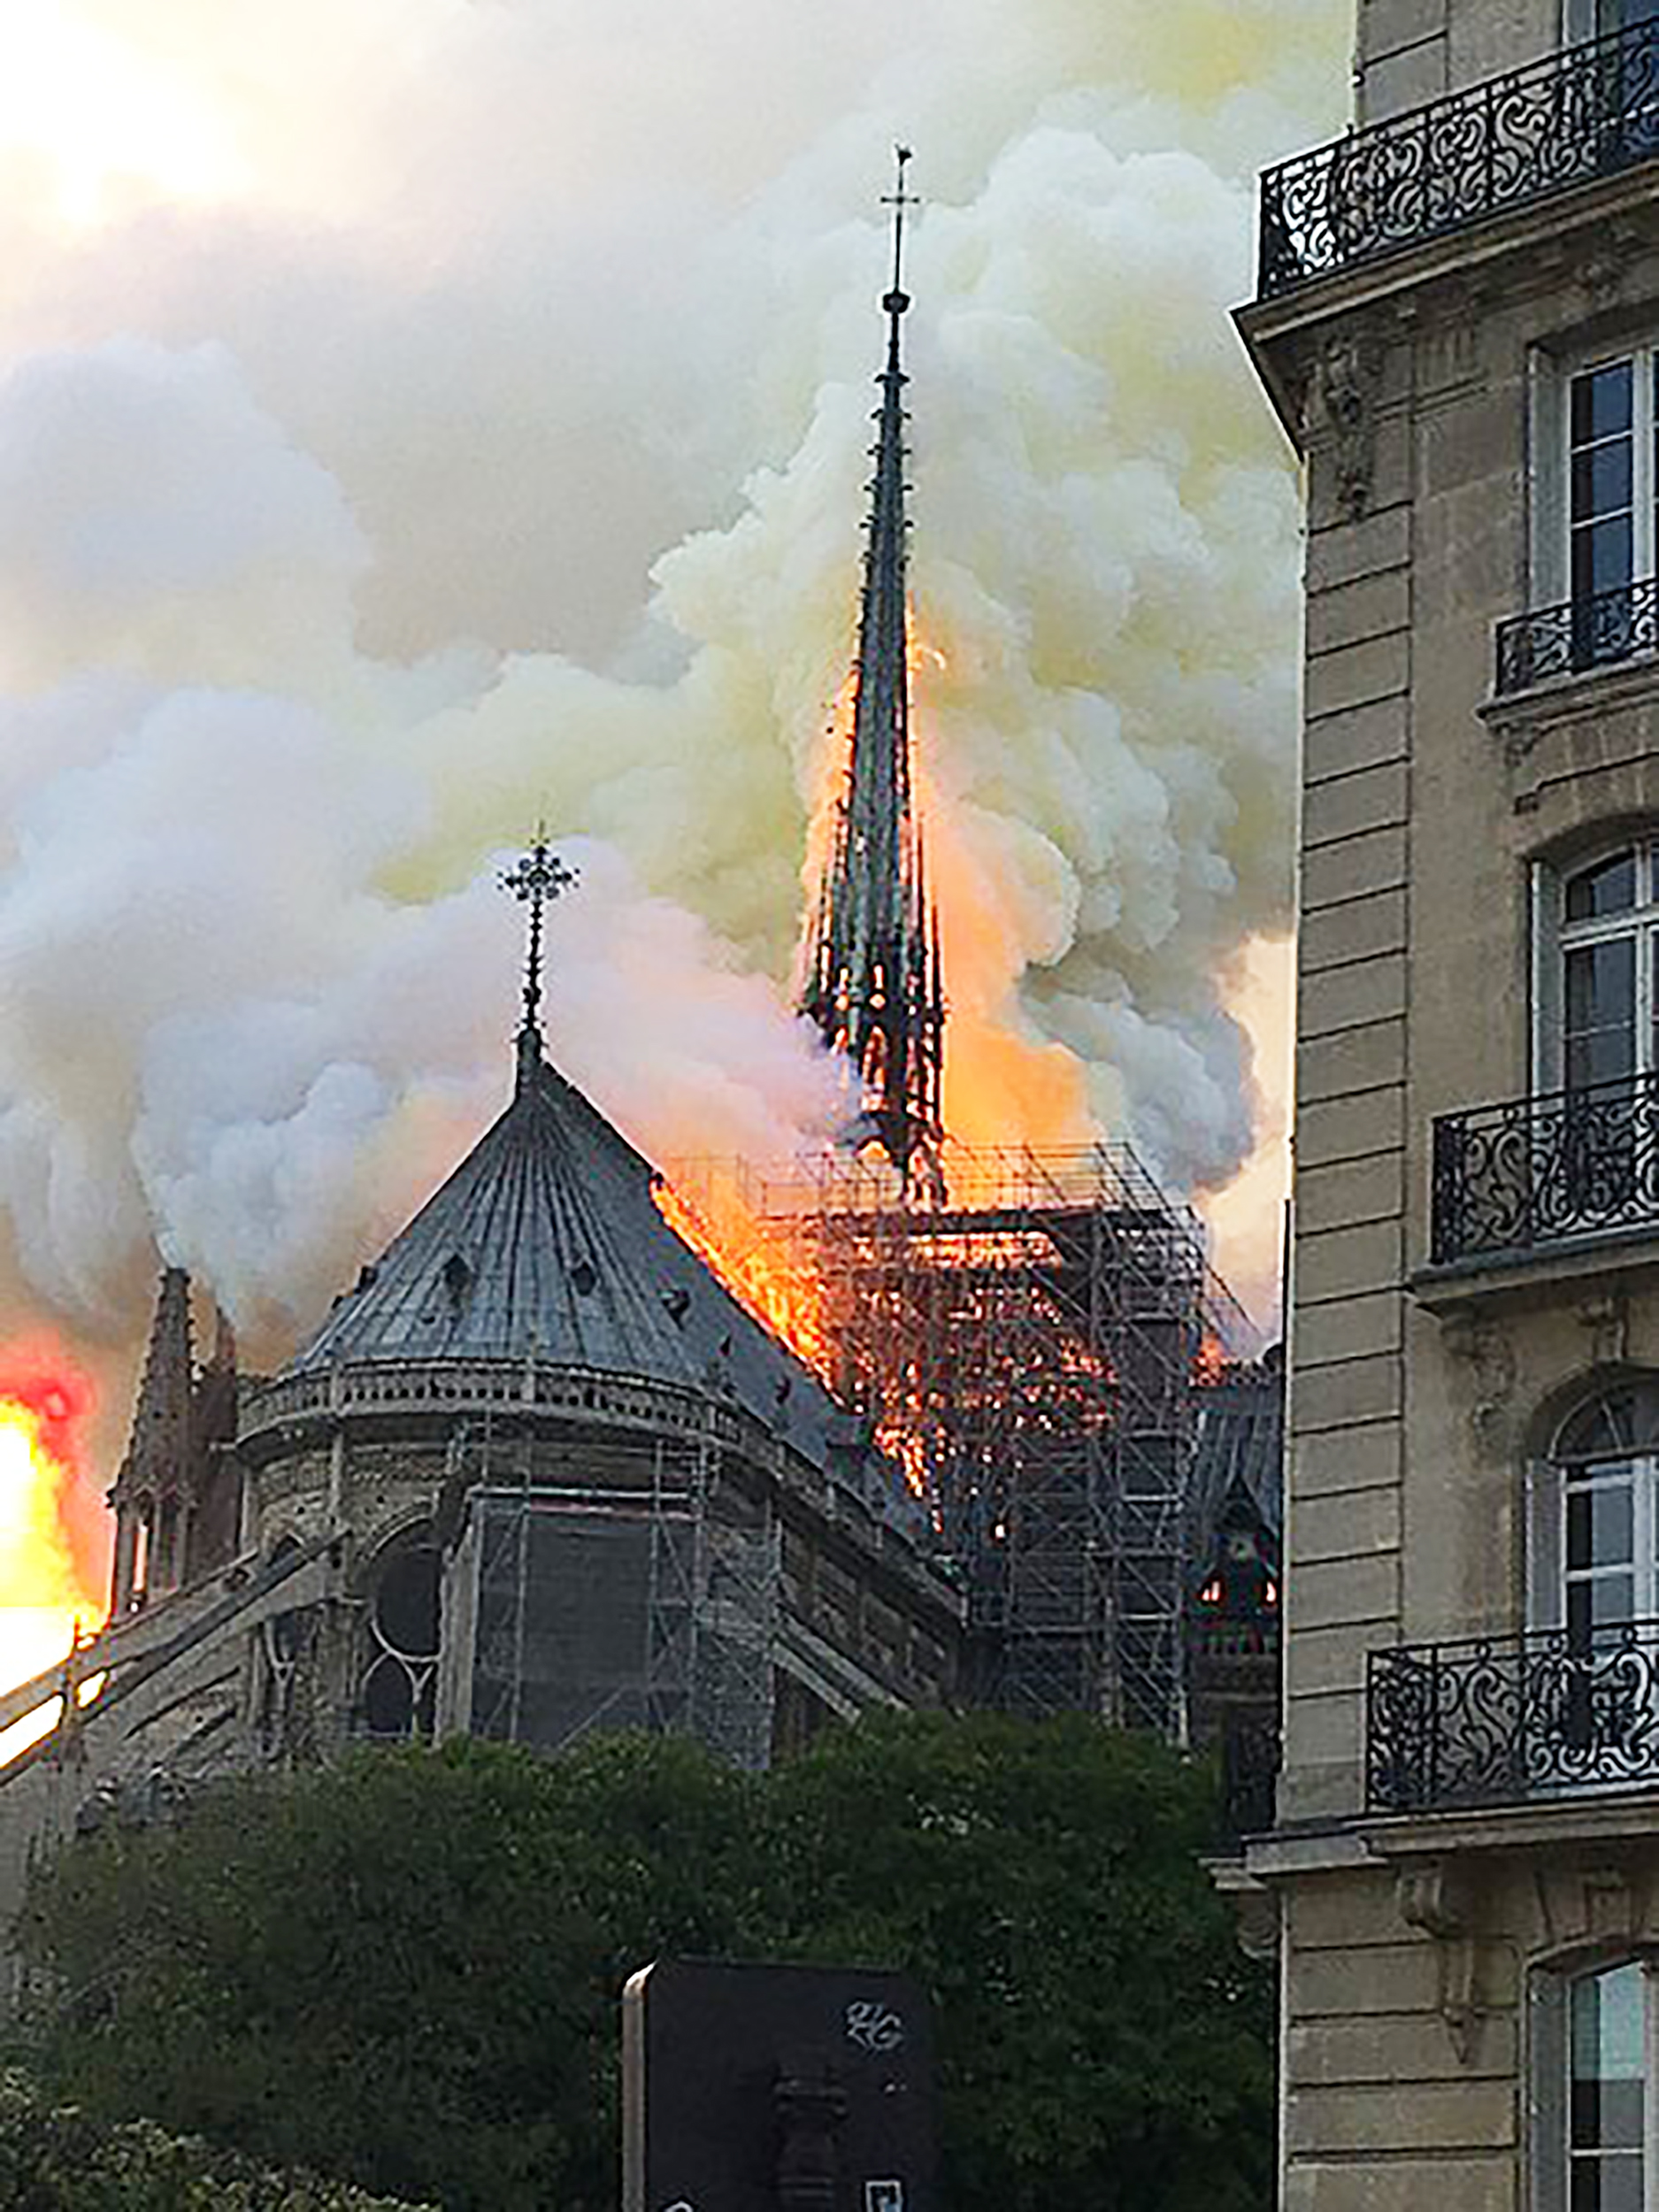 An electrical fire tore through the historic Notre Dame Cathedral on April 15. The church was currently under construction and housed many artifacts (courtesy of Creative Commons).